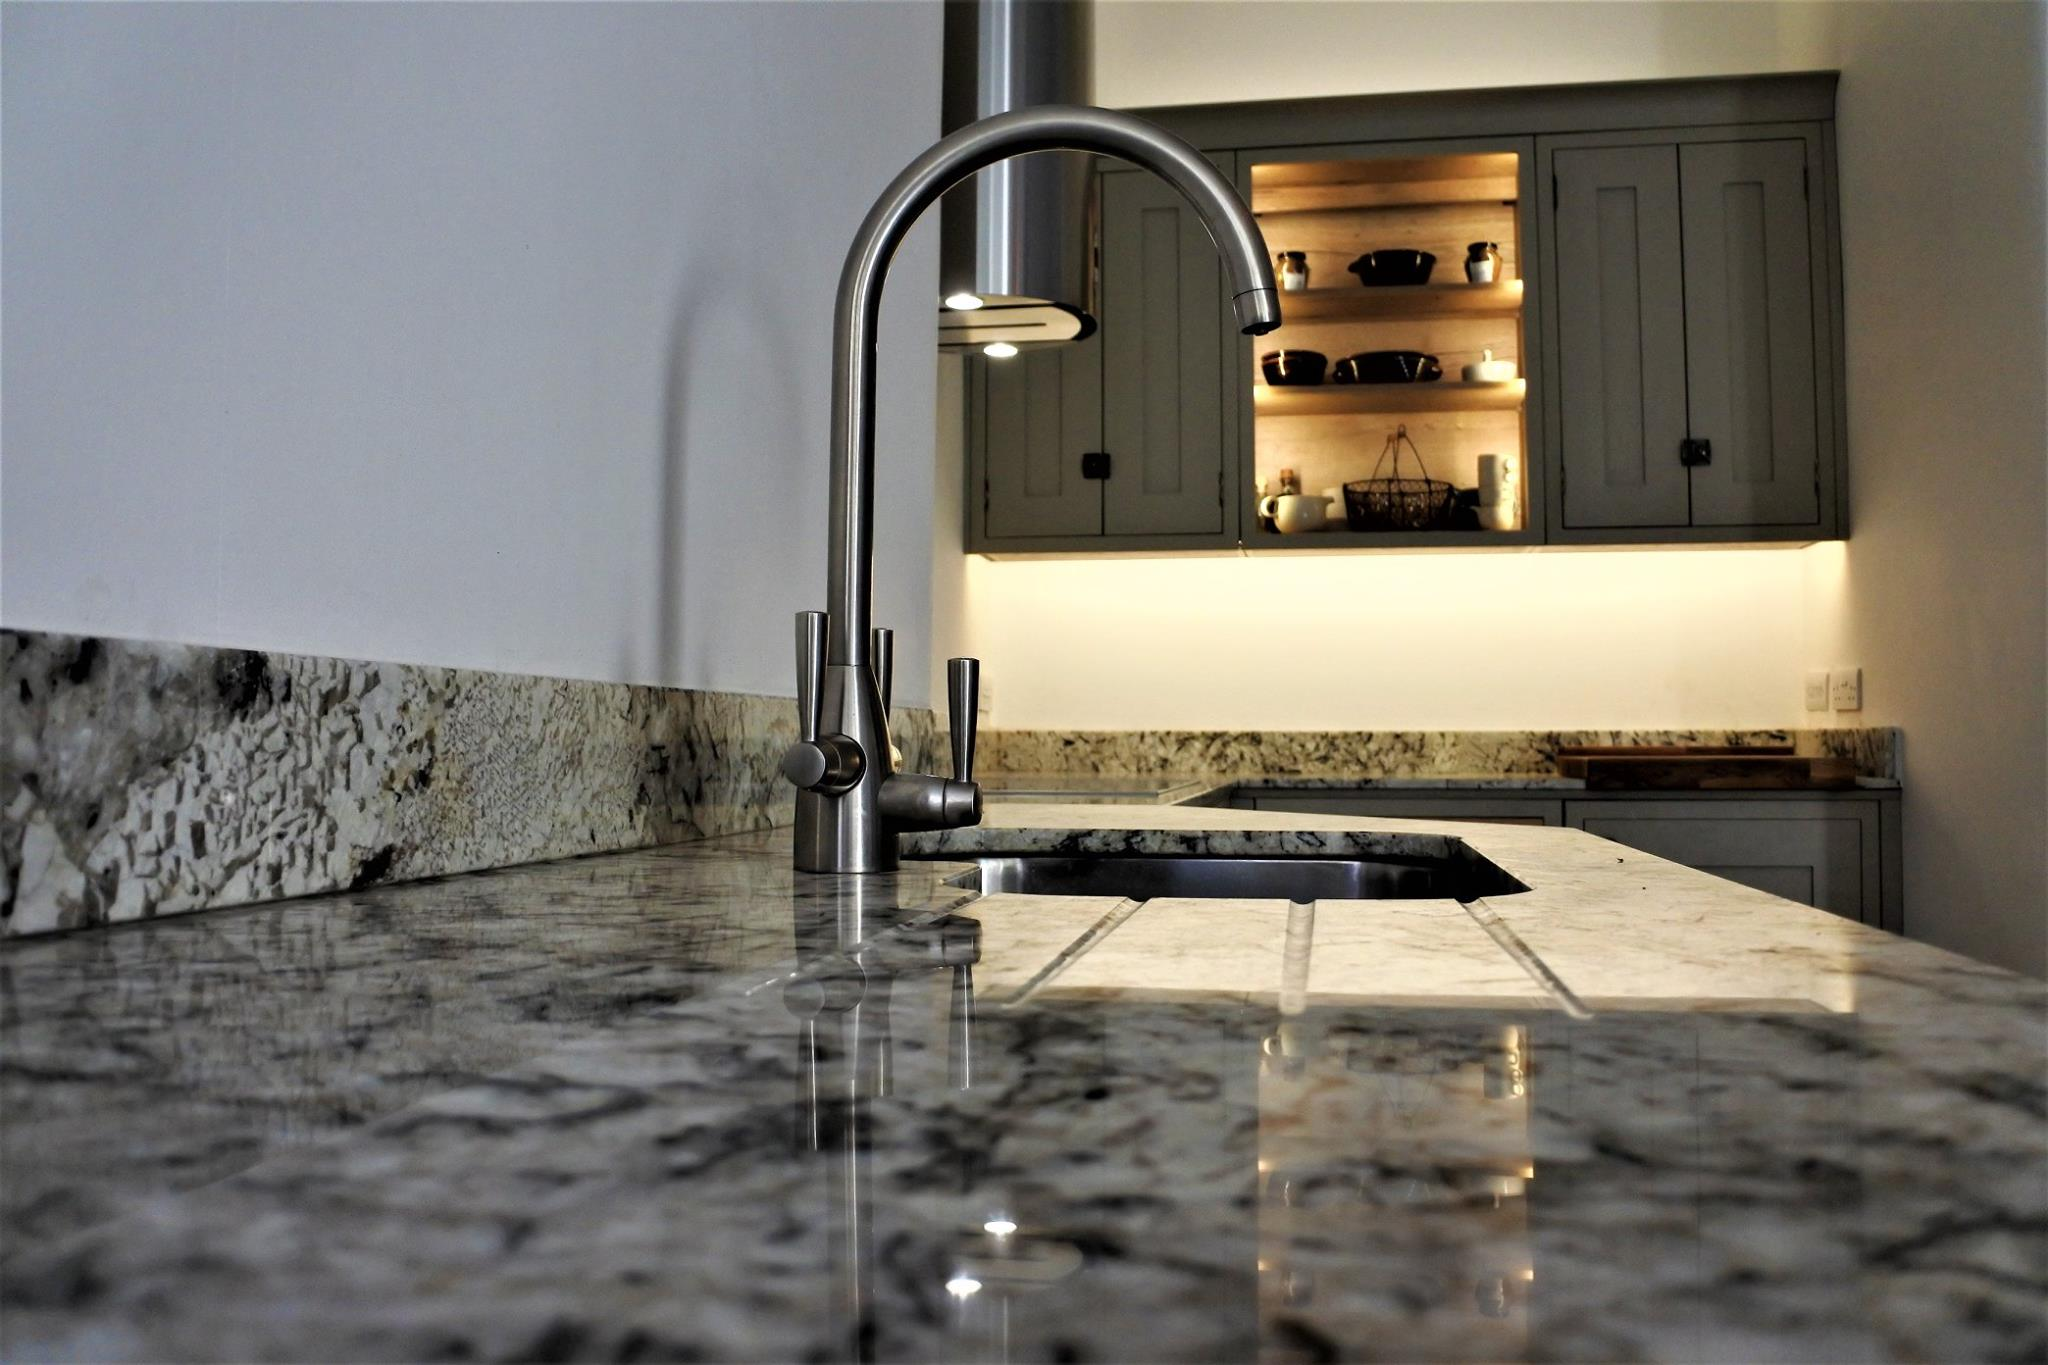 bespoke-kitchens-attention-to-detail